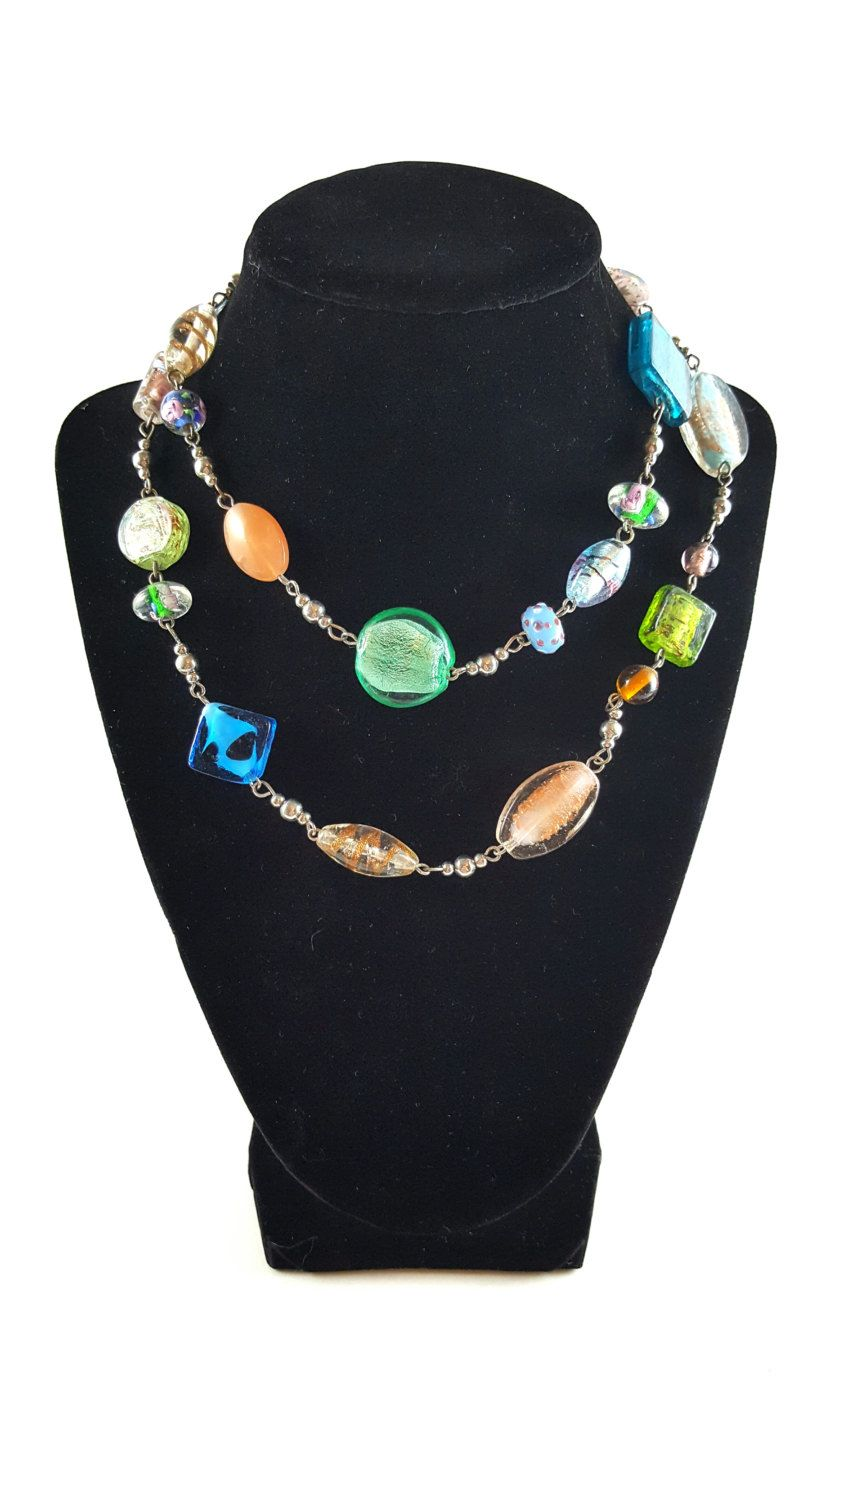 Premier Designs multi color glass beaded necklace vintage designer